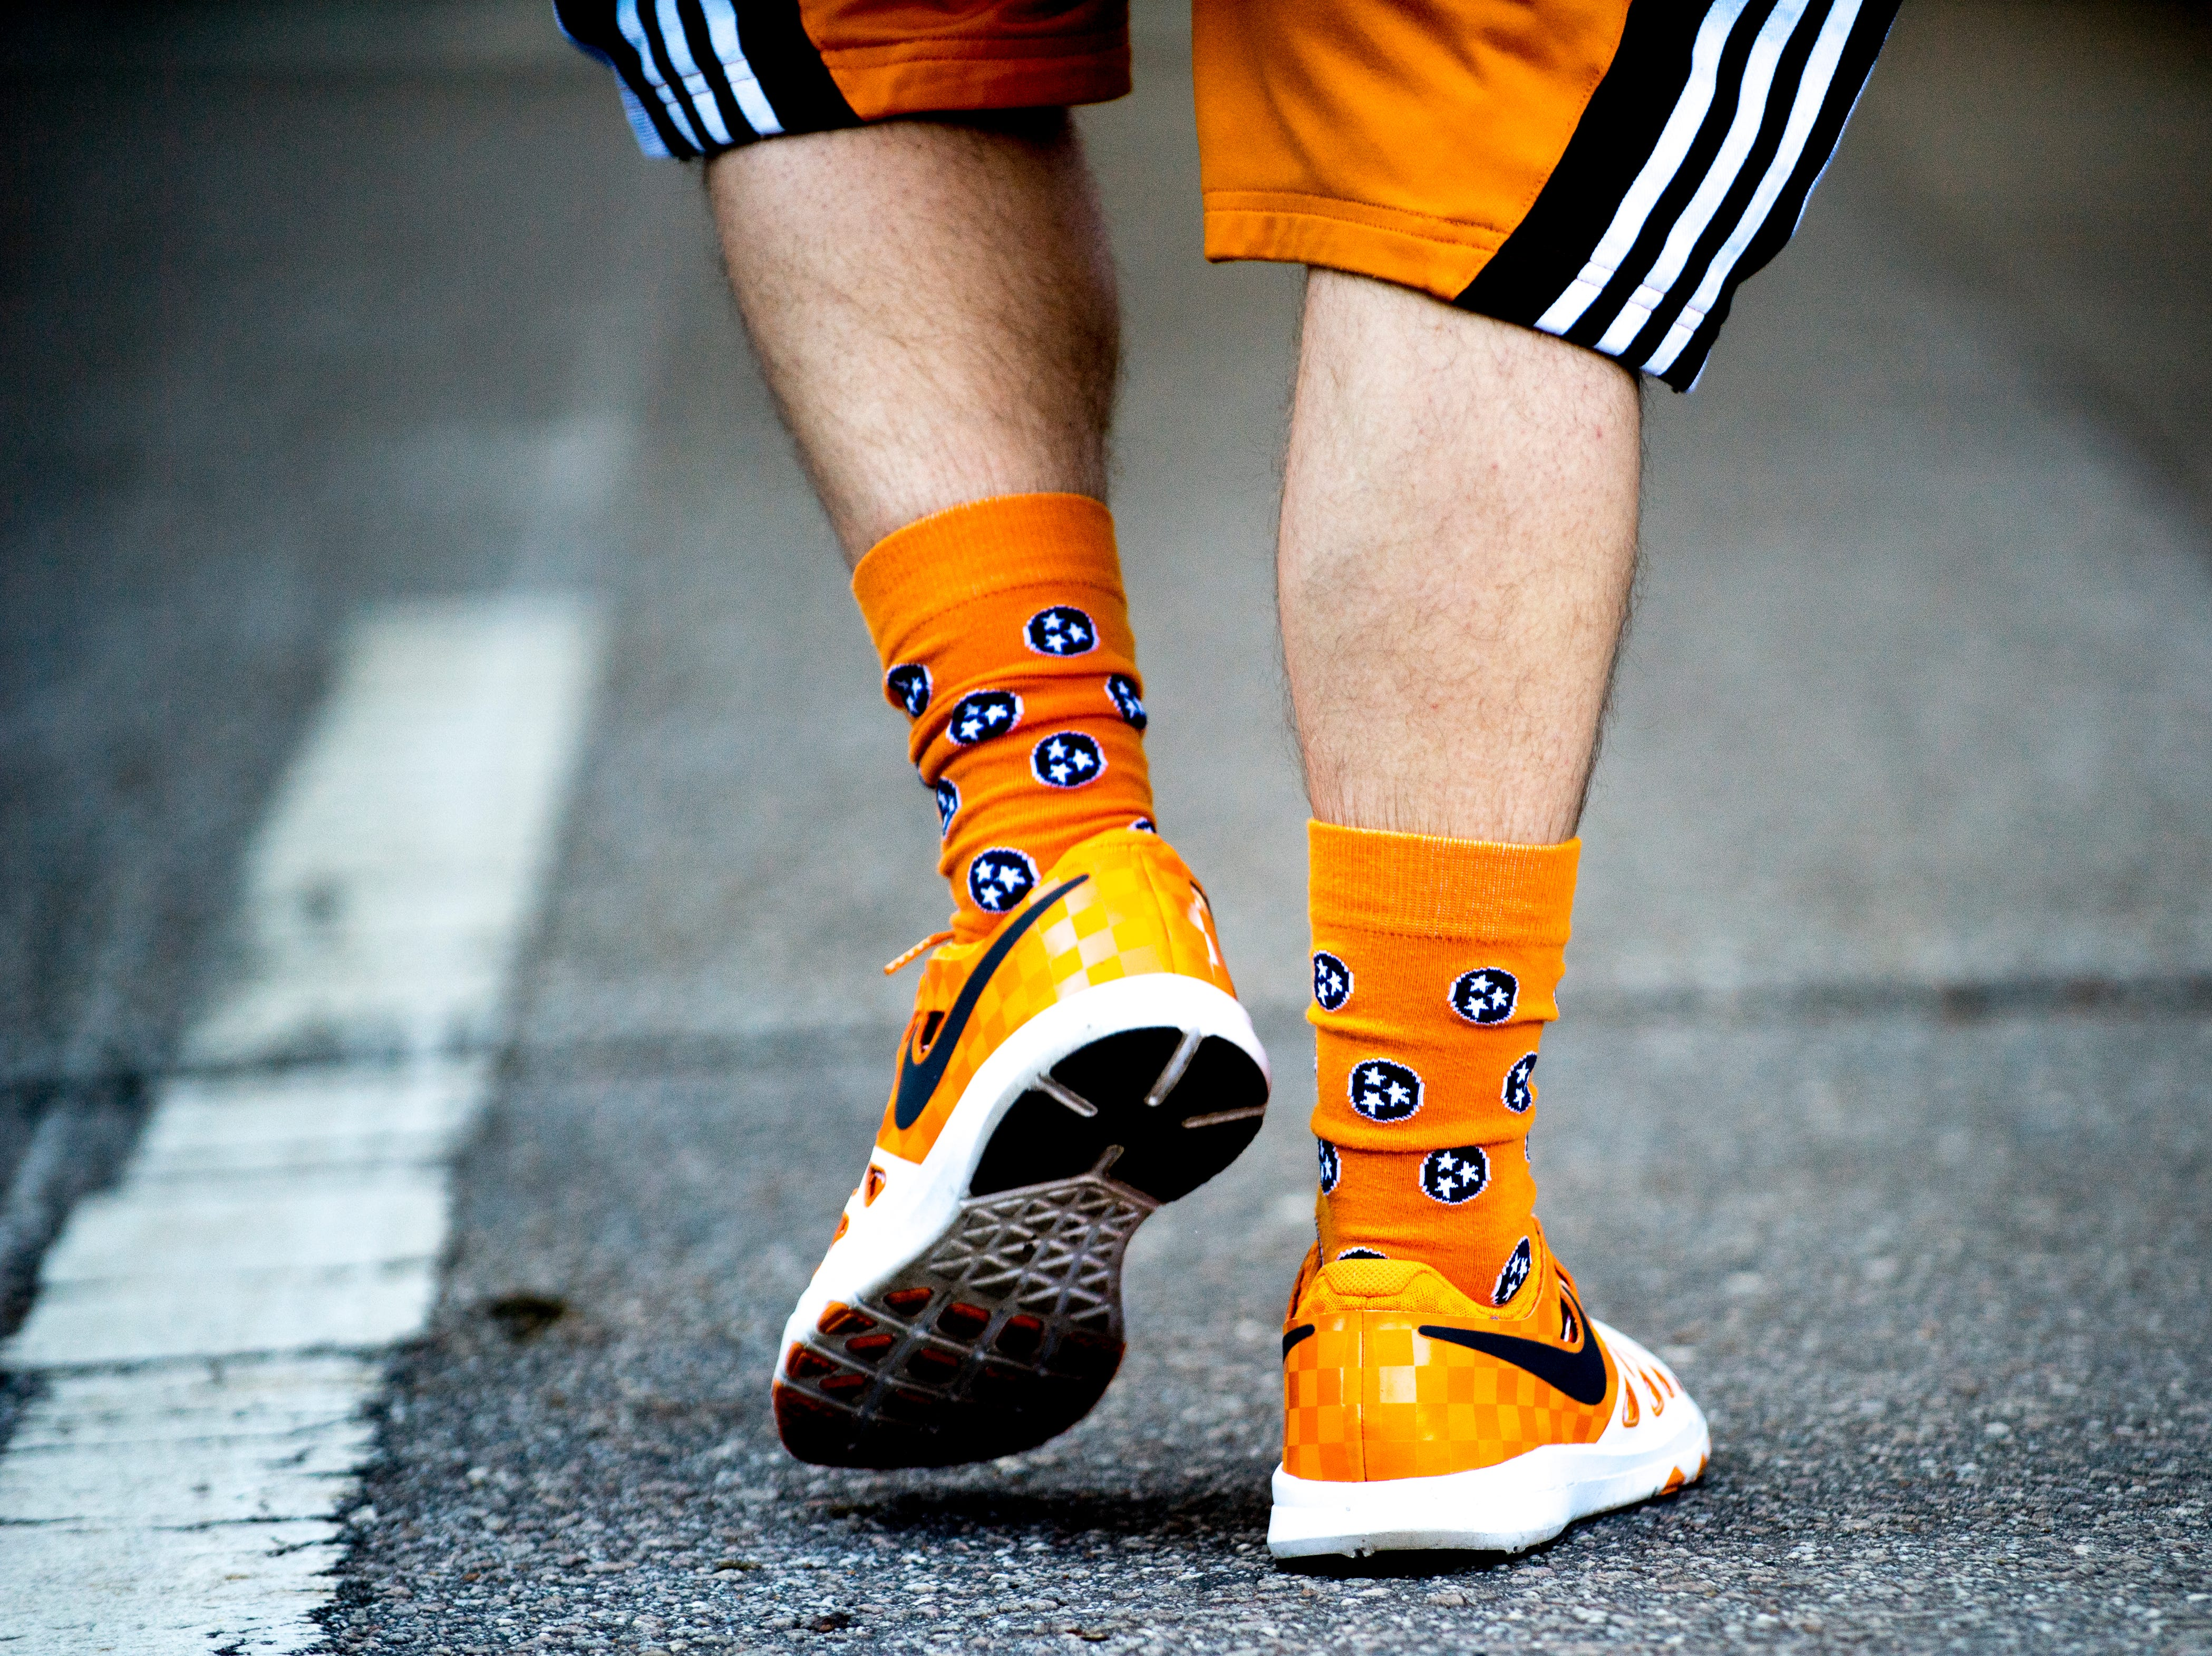 Vol fans sport Tennessee socks during a game between Tennessee and Auburn at Jordan-Hare Stadium in Auburn, Alabama on Saturday, October 13, 2018.